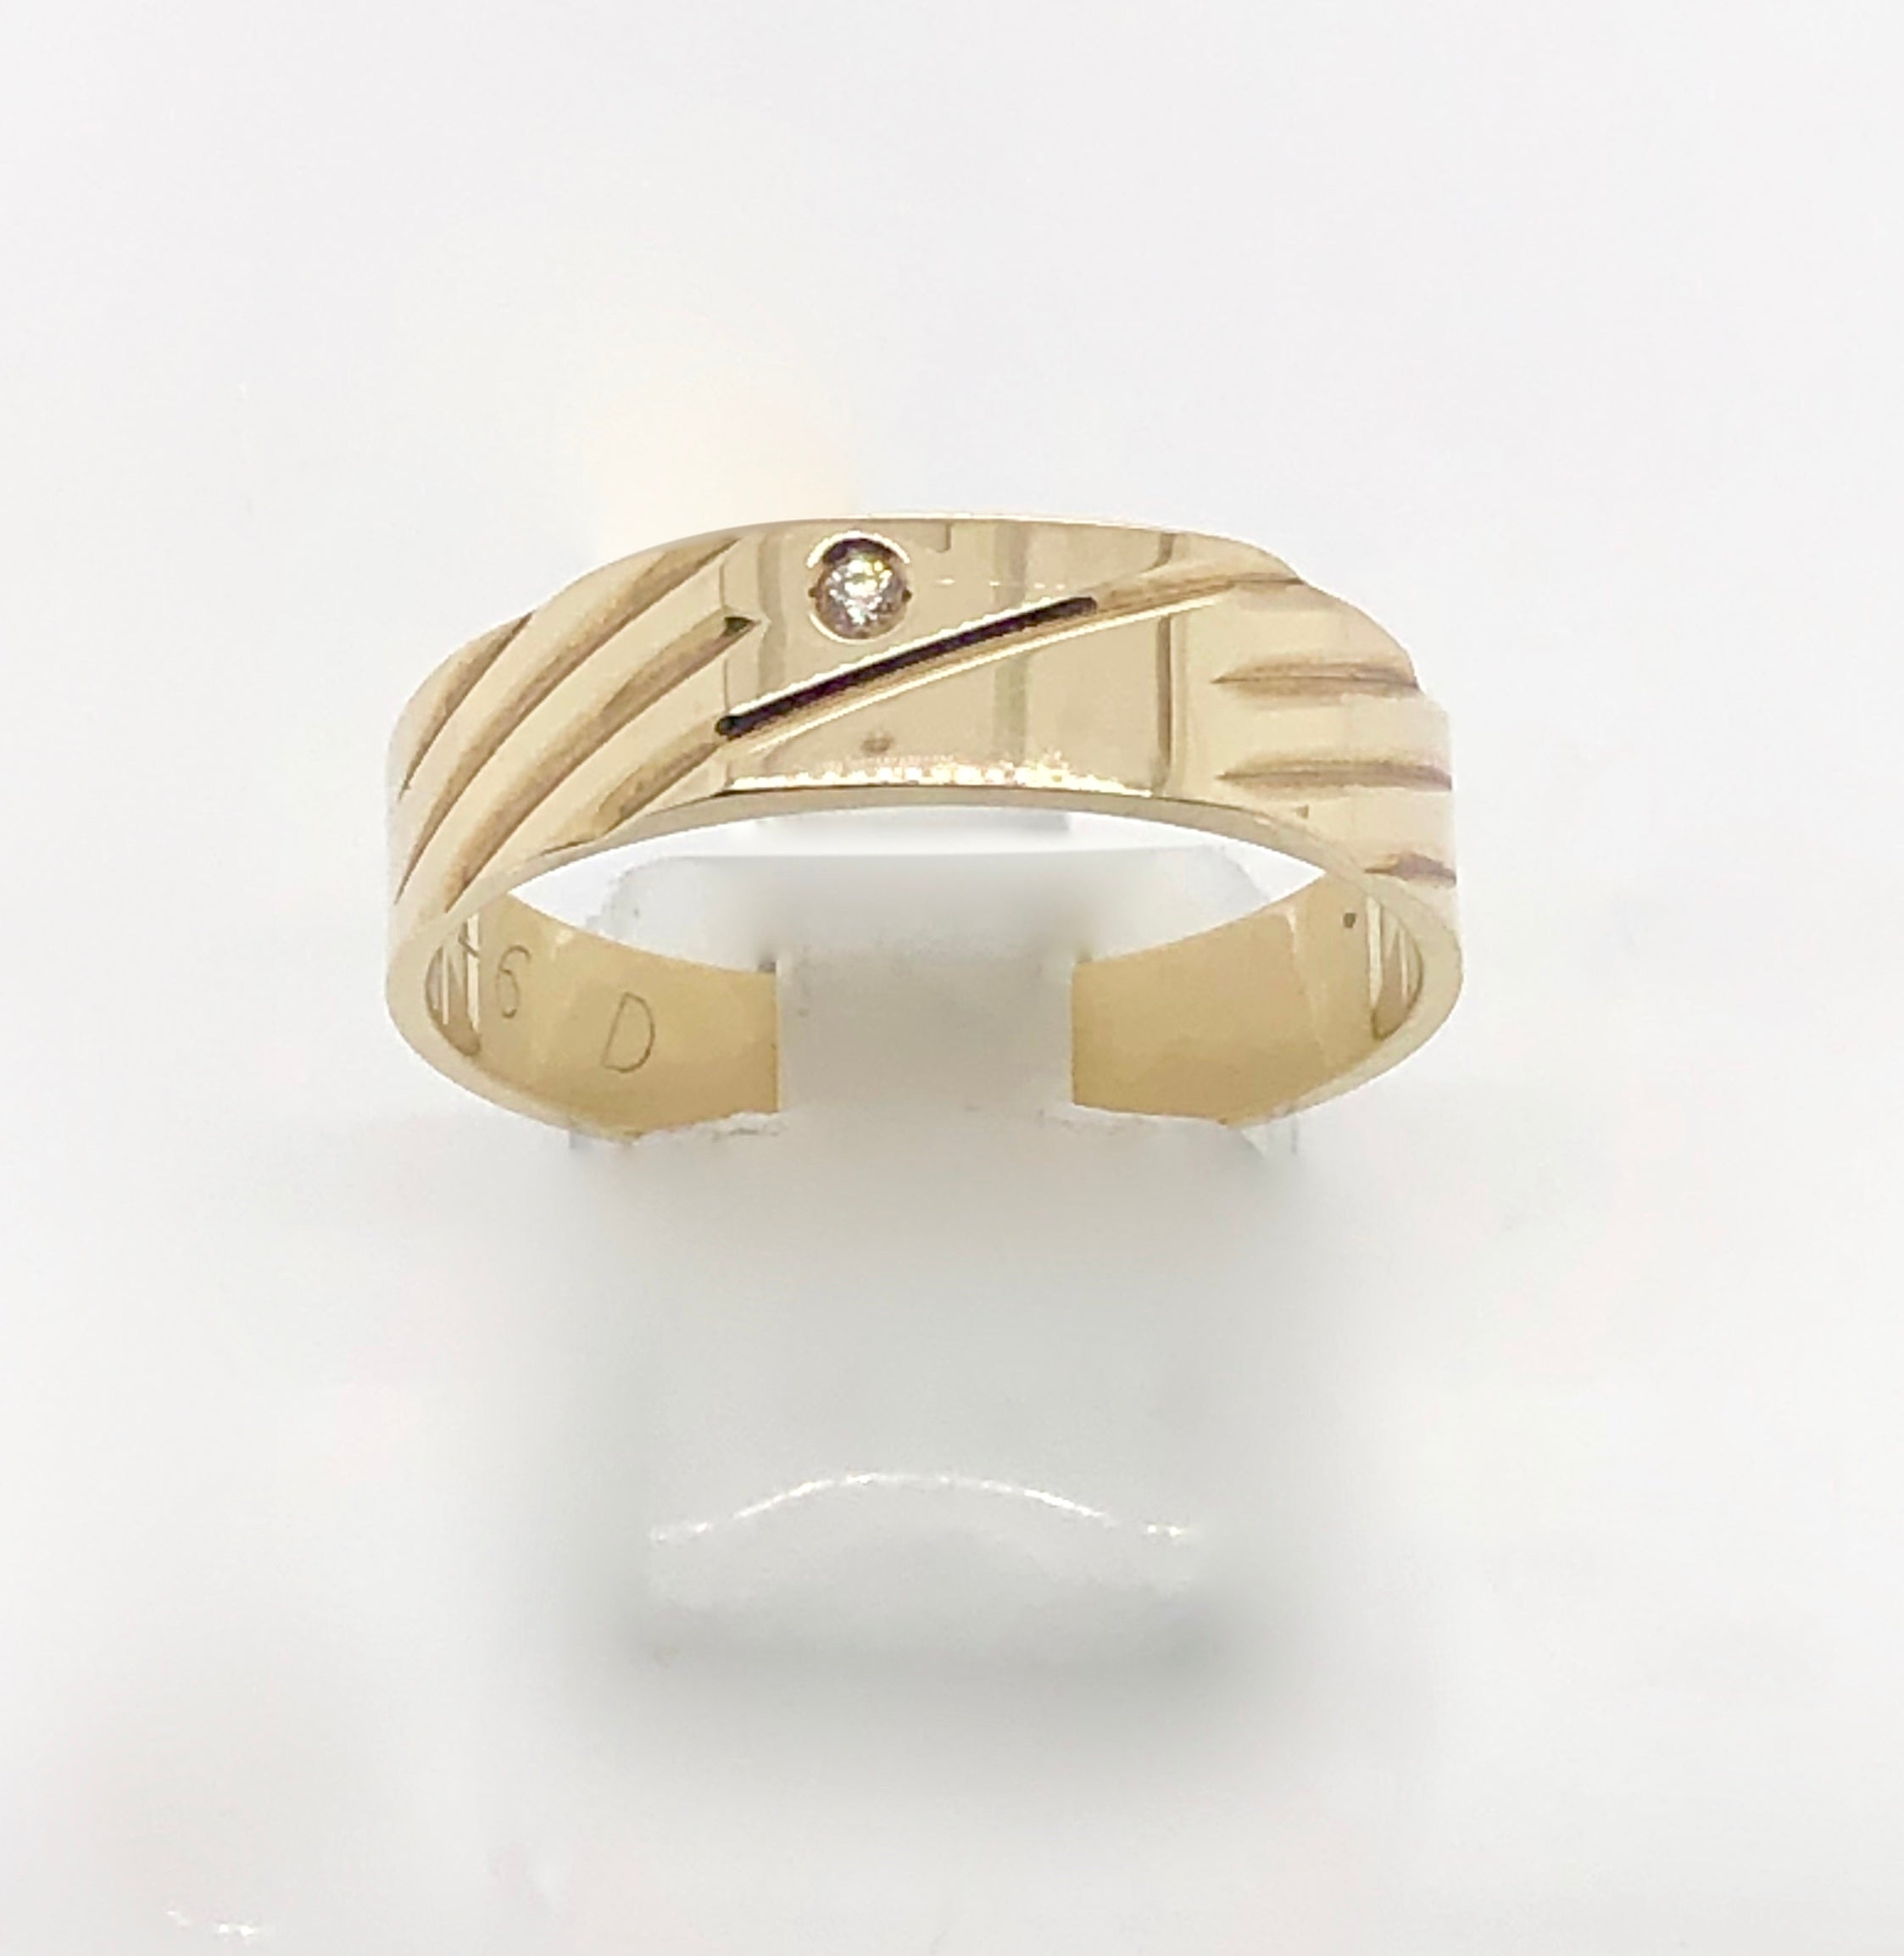 9ct Gold Gents Ring 007